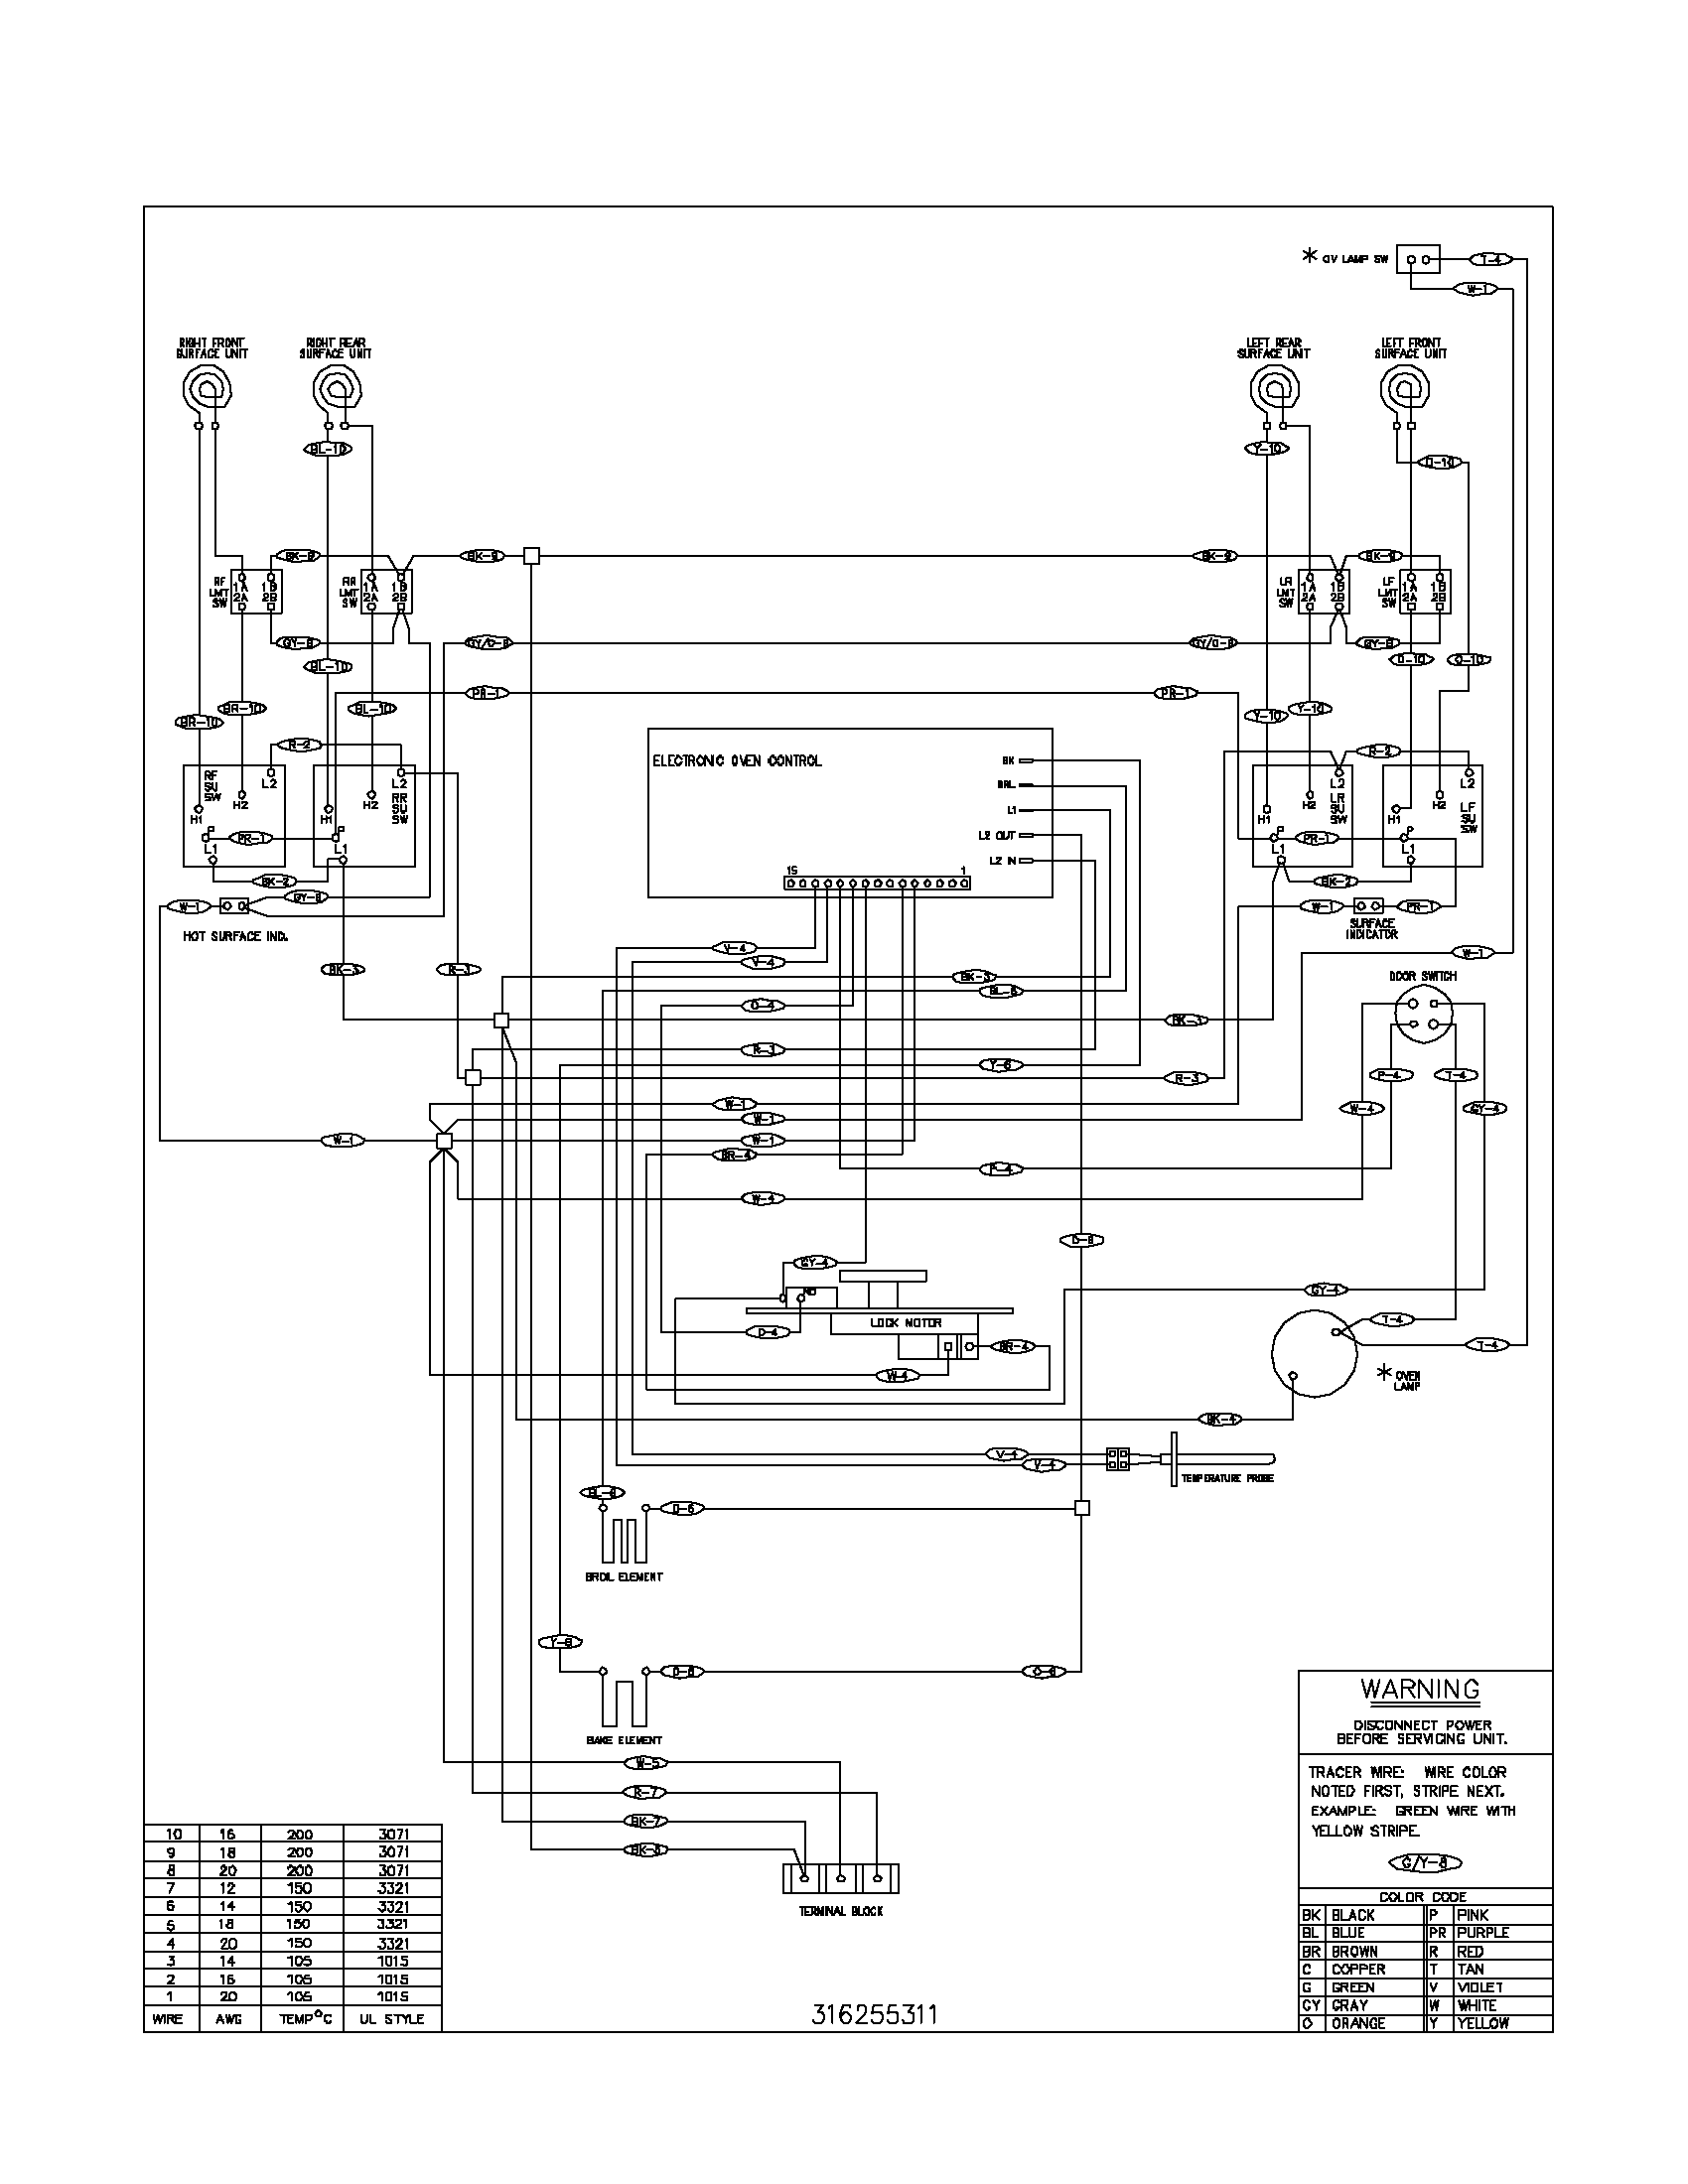 wiring diagram for garland oven